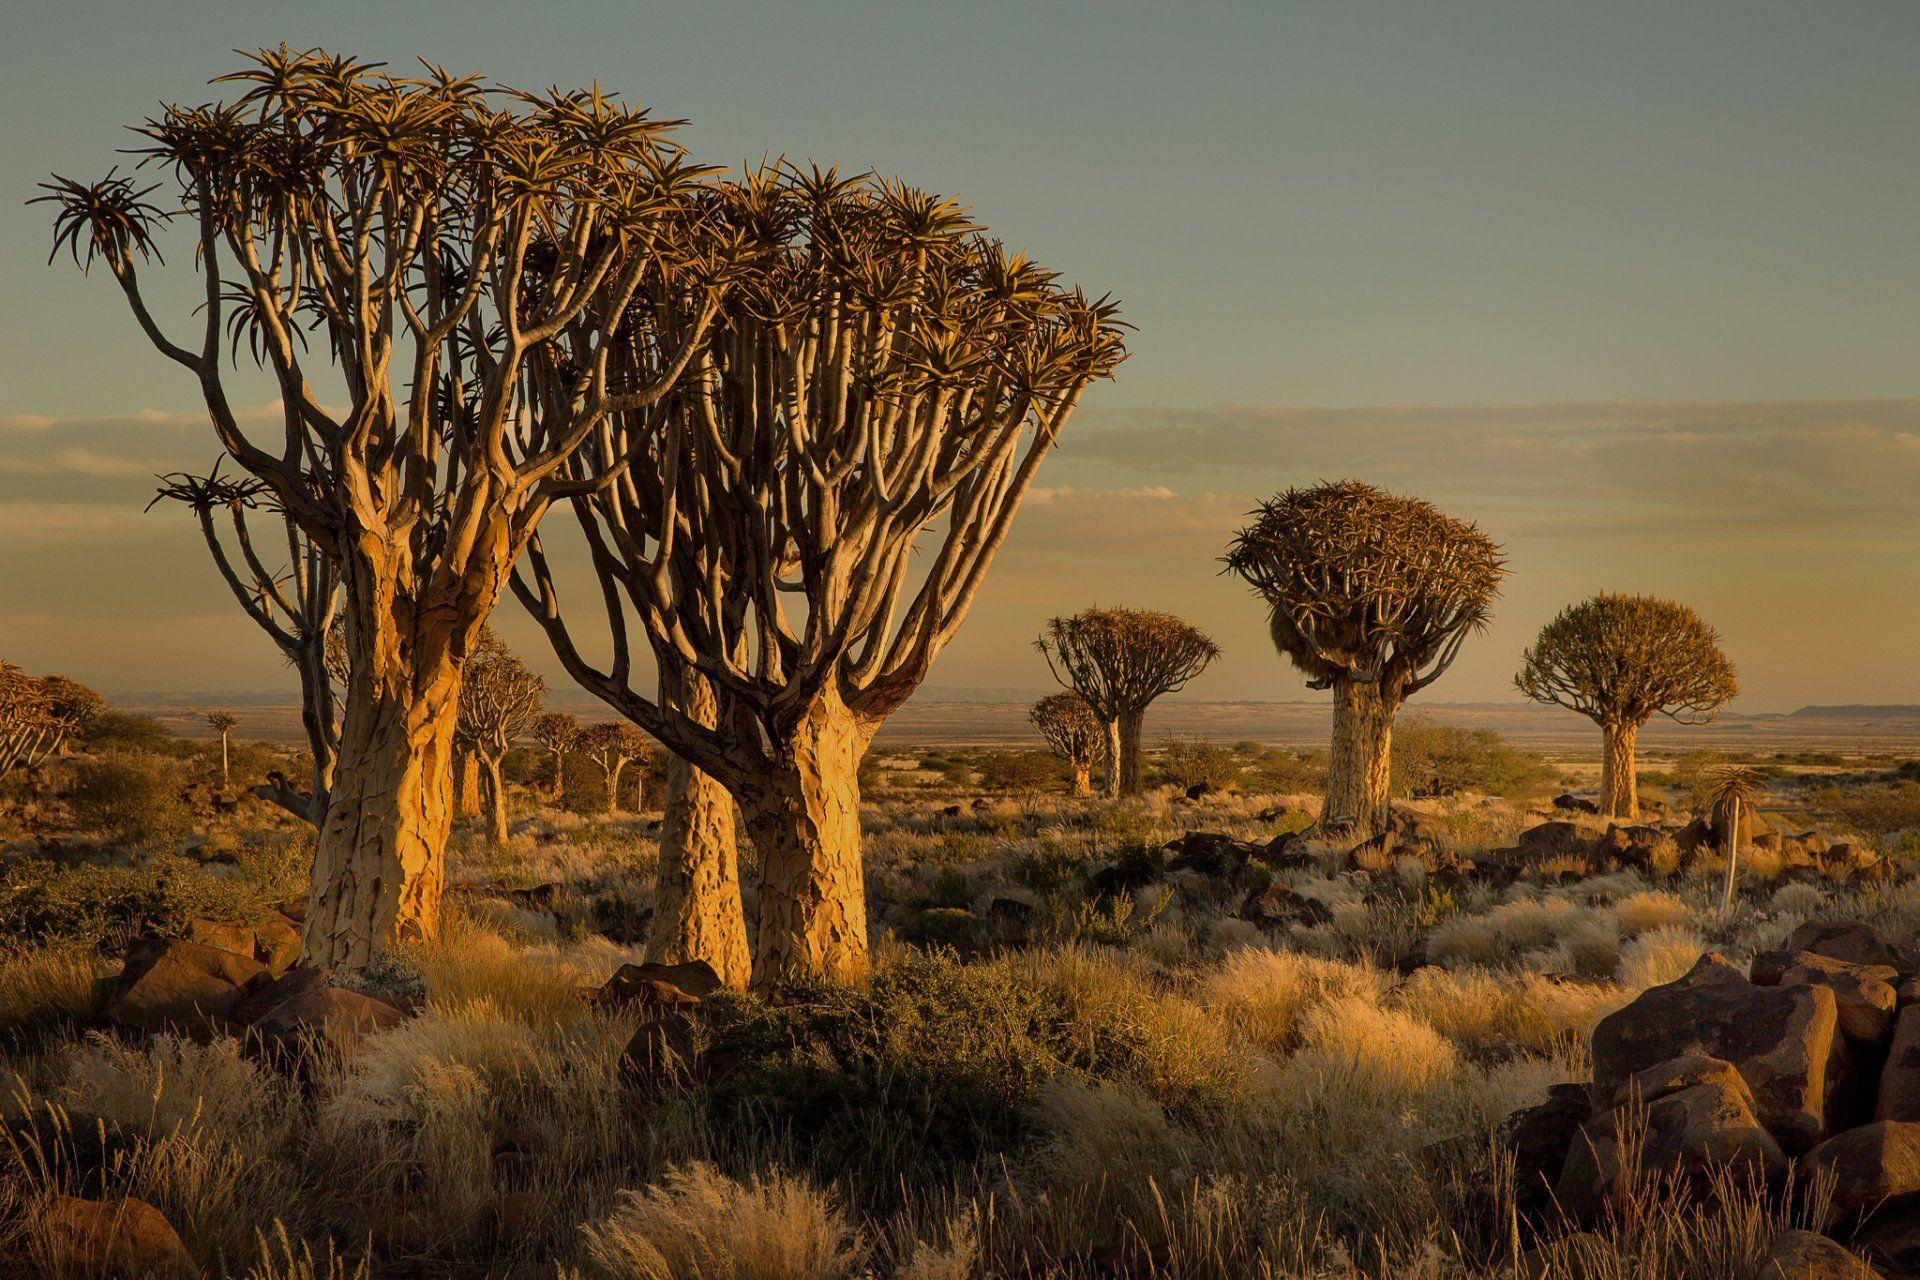 namibia africa sunset tree stones grass HD wallpaper